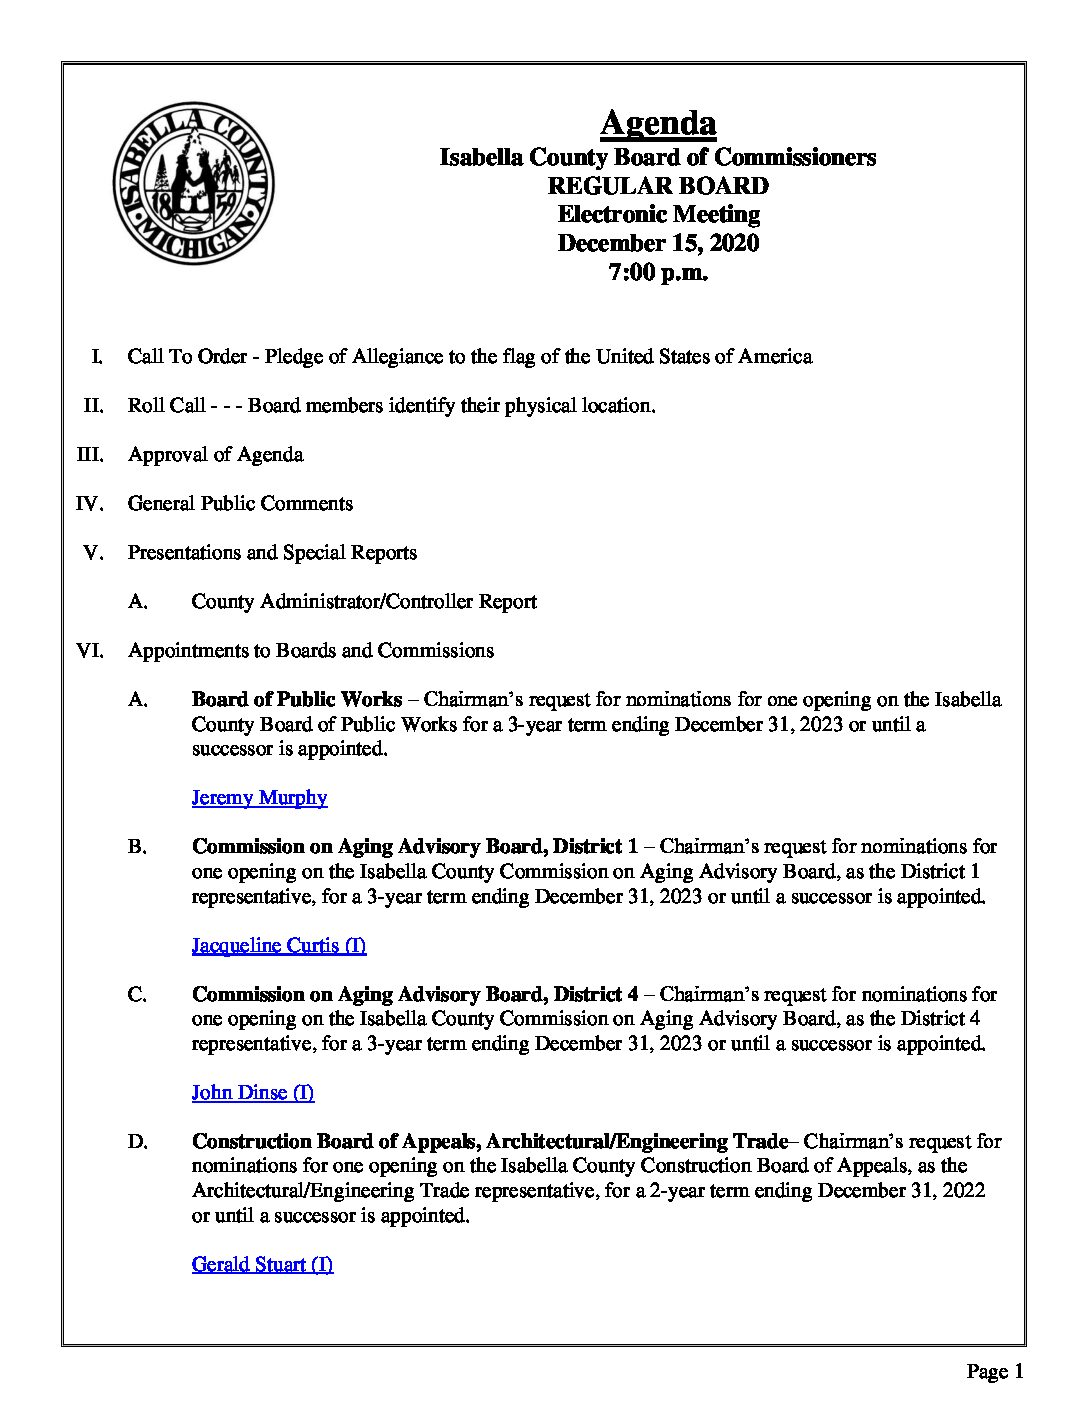 preview image of first page December 15, 2020 Agenda